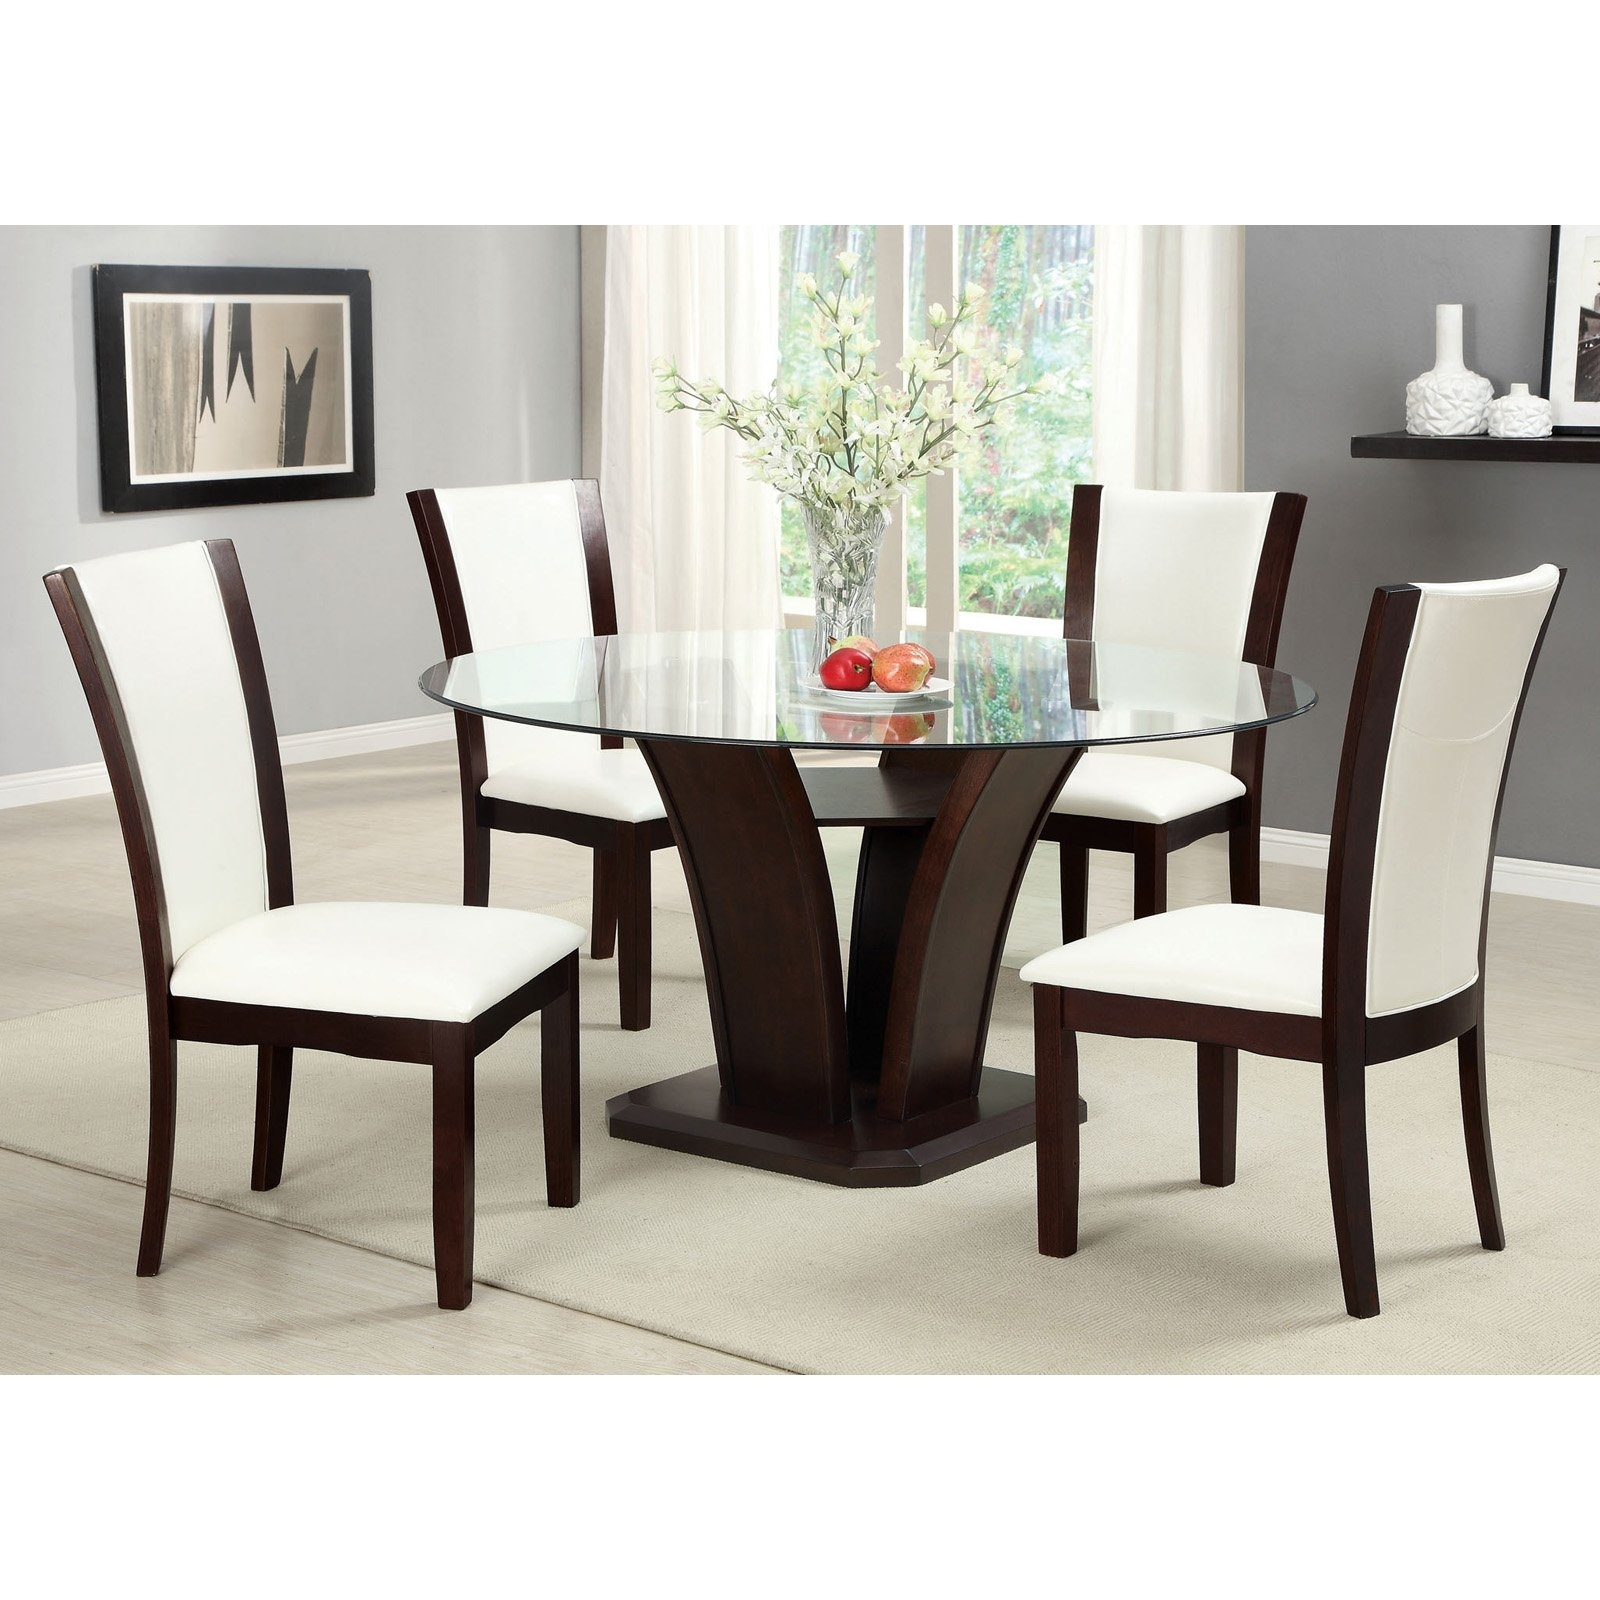 Furniture Of America Lavelle 5 Piece Glass Top Dining Set – Dark With Most Current Jensen 5 Piece Counter Sets (Image 5 of 20)